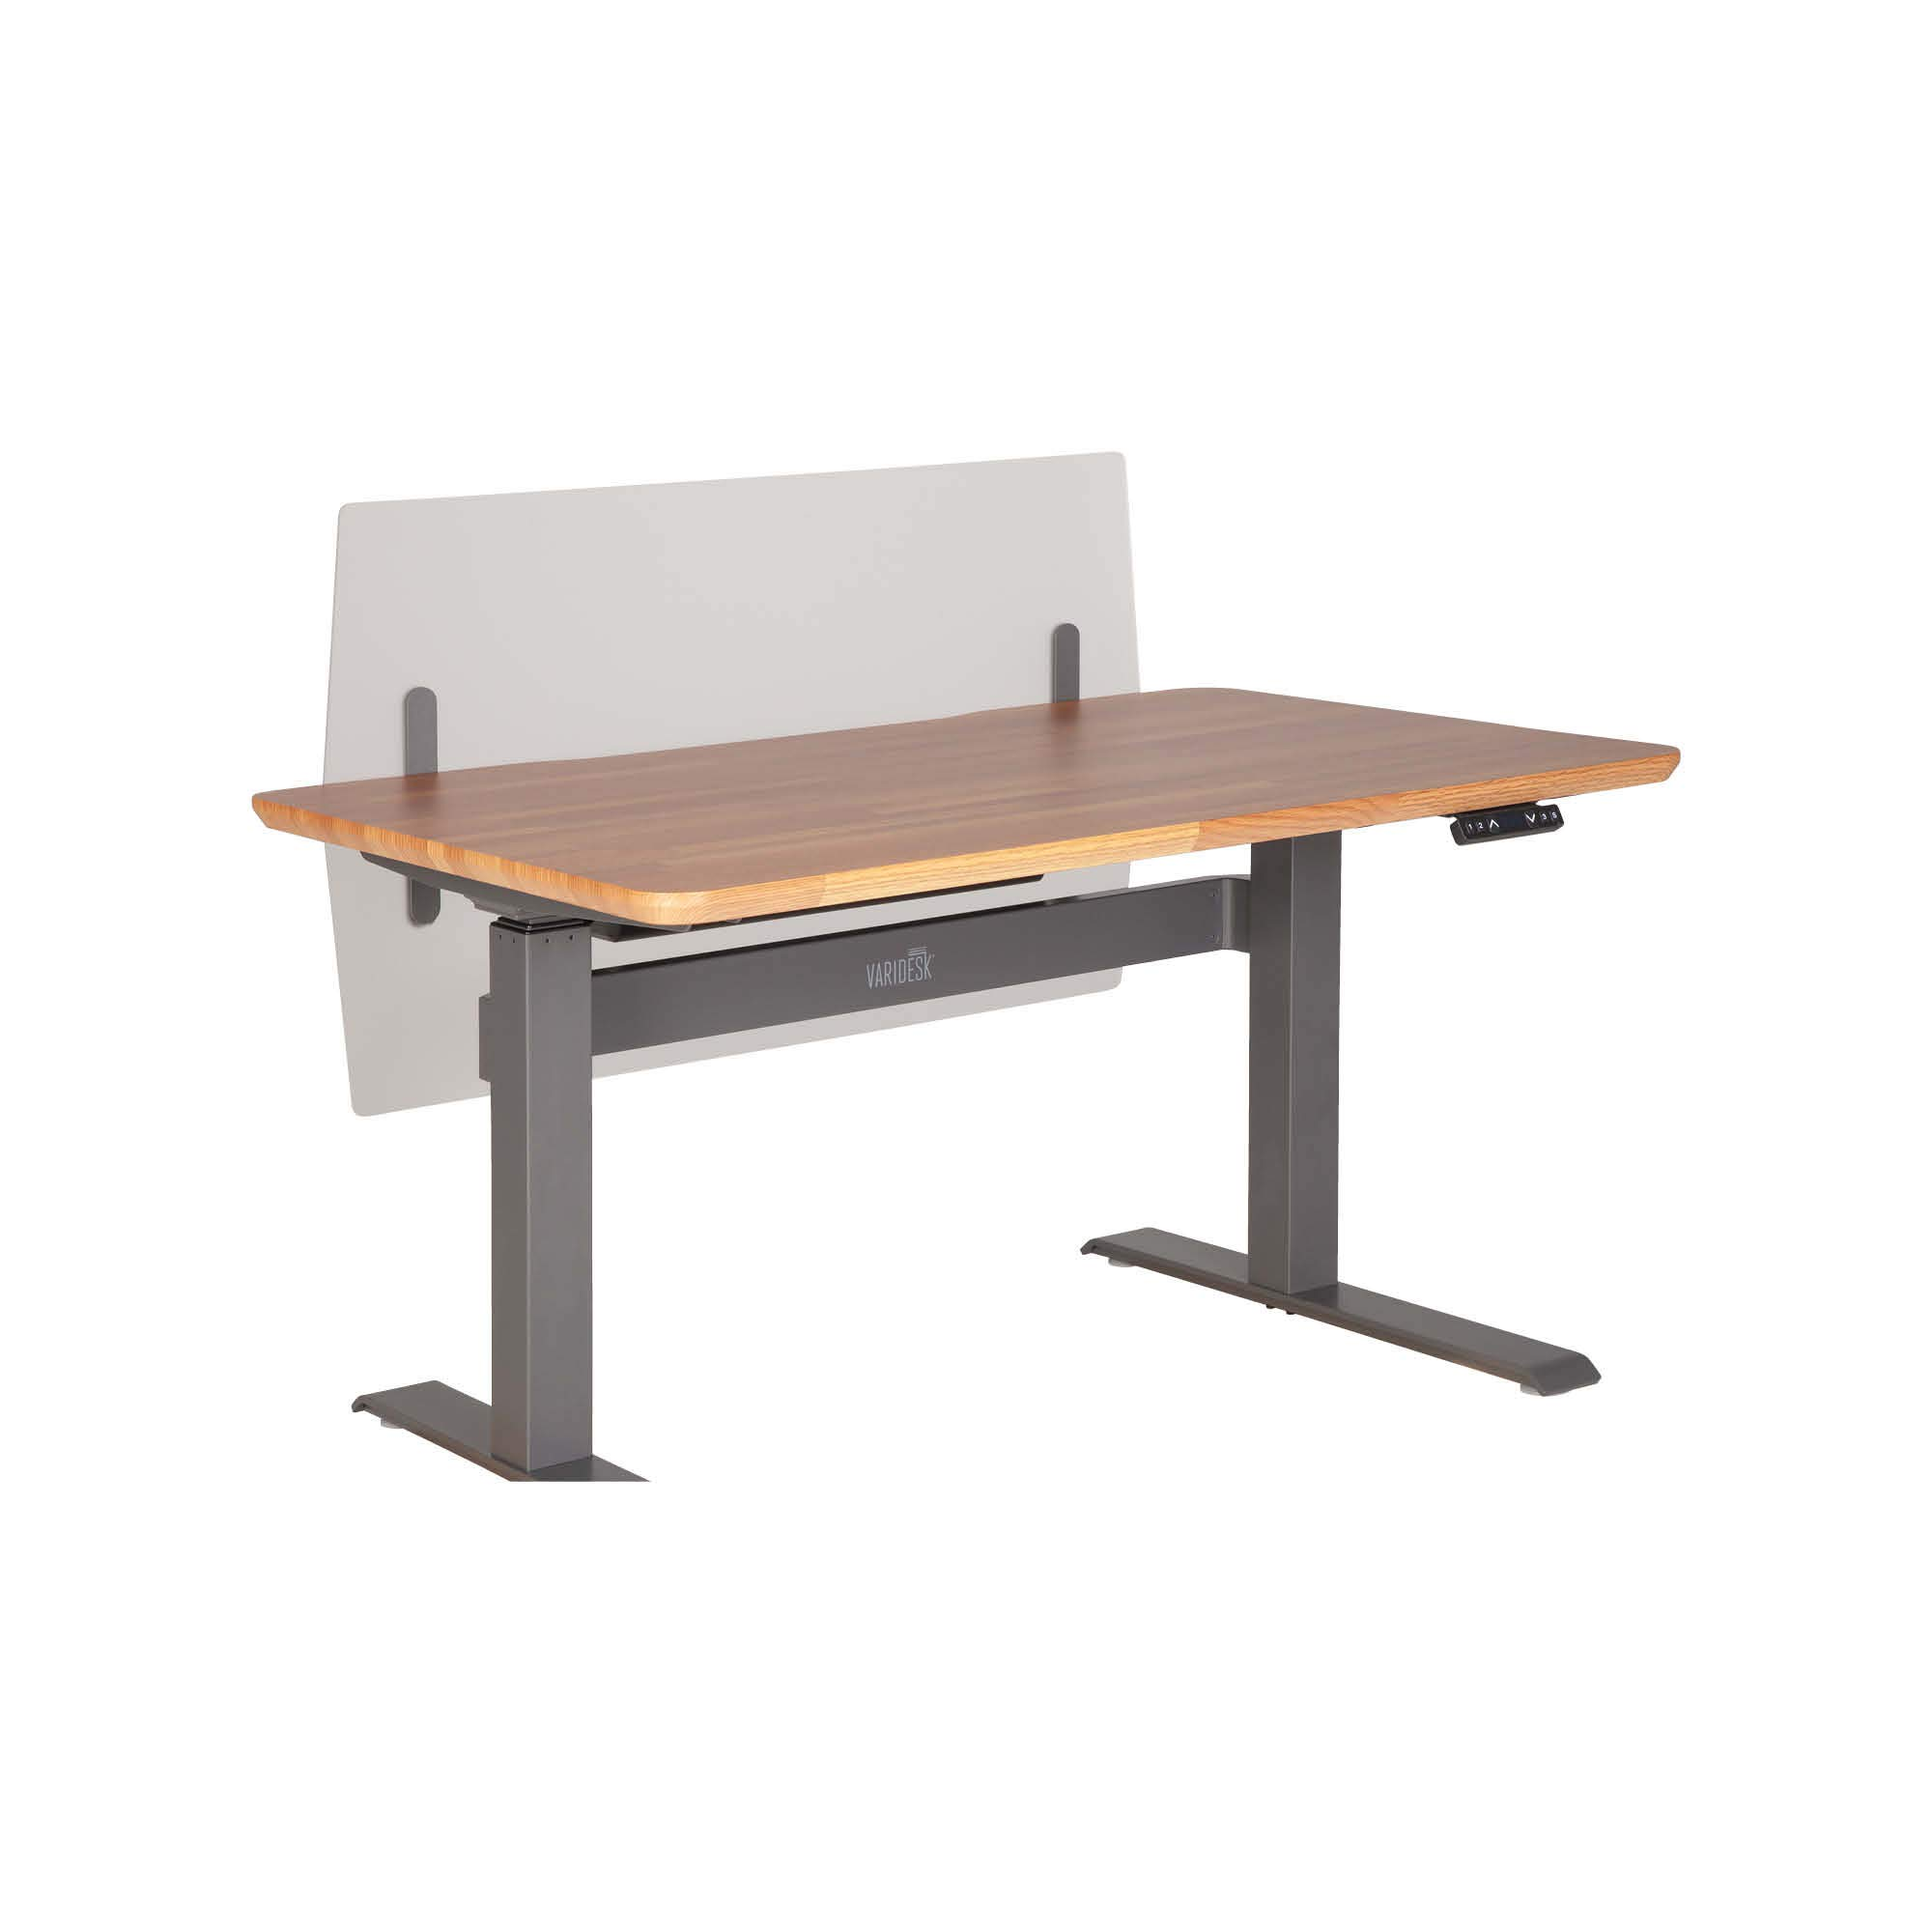 VARIDESK - ProDesk Electric Privacy and Modesty Panel 48 - Office Partition by VARIDESK